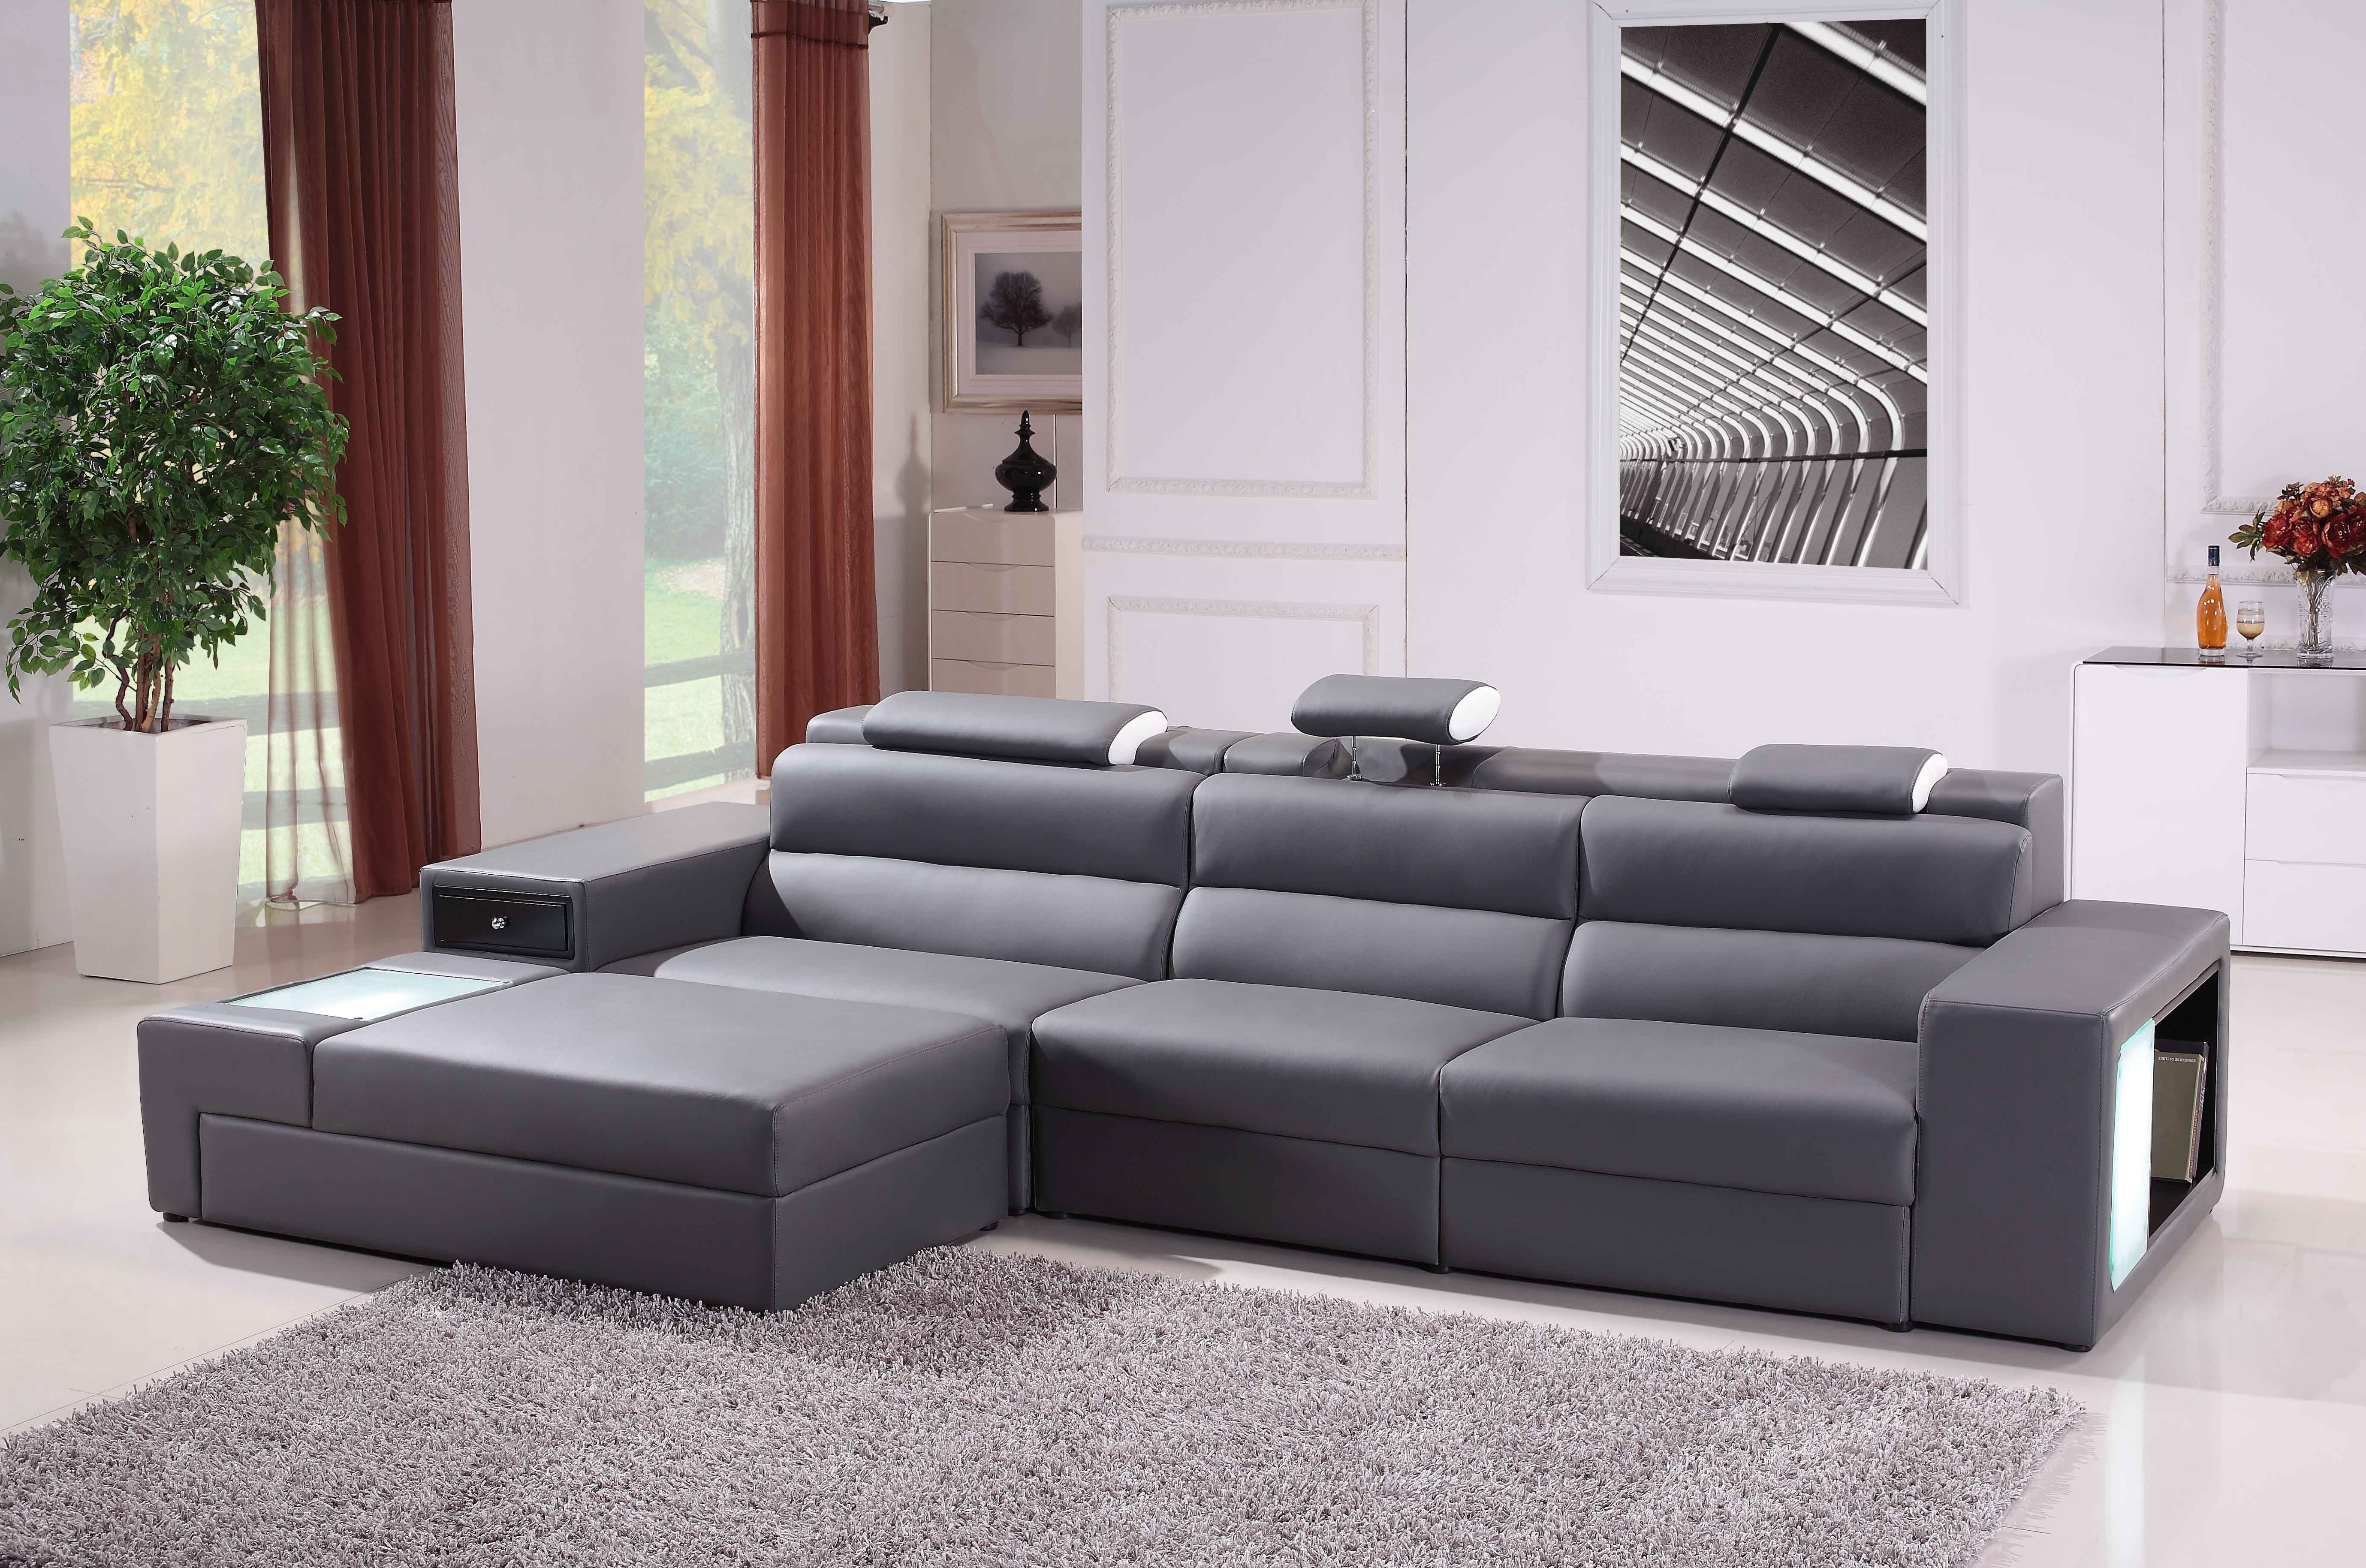 Modern Grey Leather Sofa Sam Levitz Furniture For Gray Decorations Intended For Widely Used Sam Levitz Sectional Sofas (View 6 of 20)